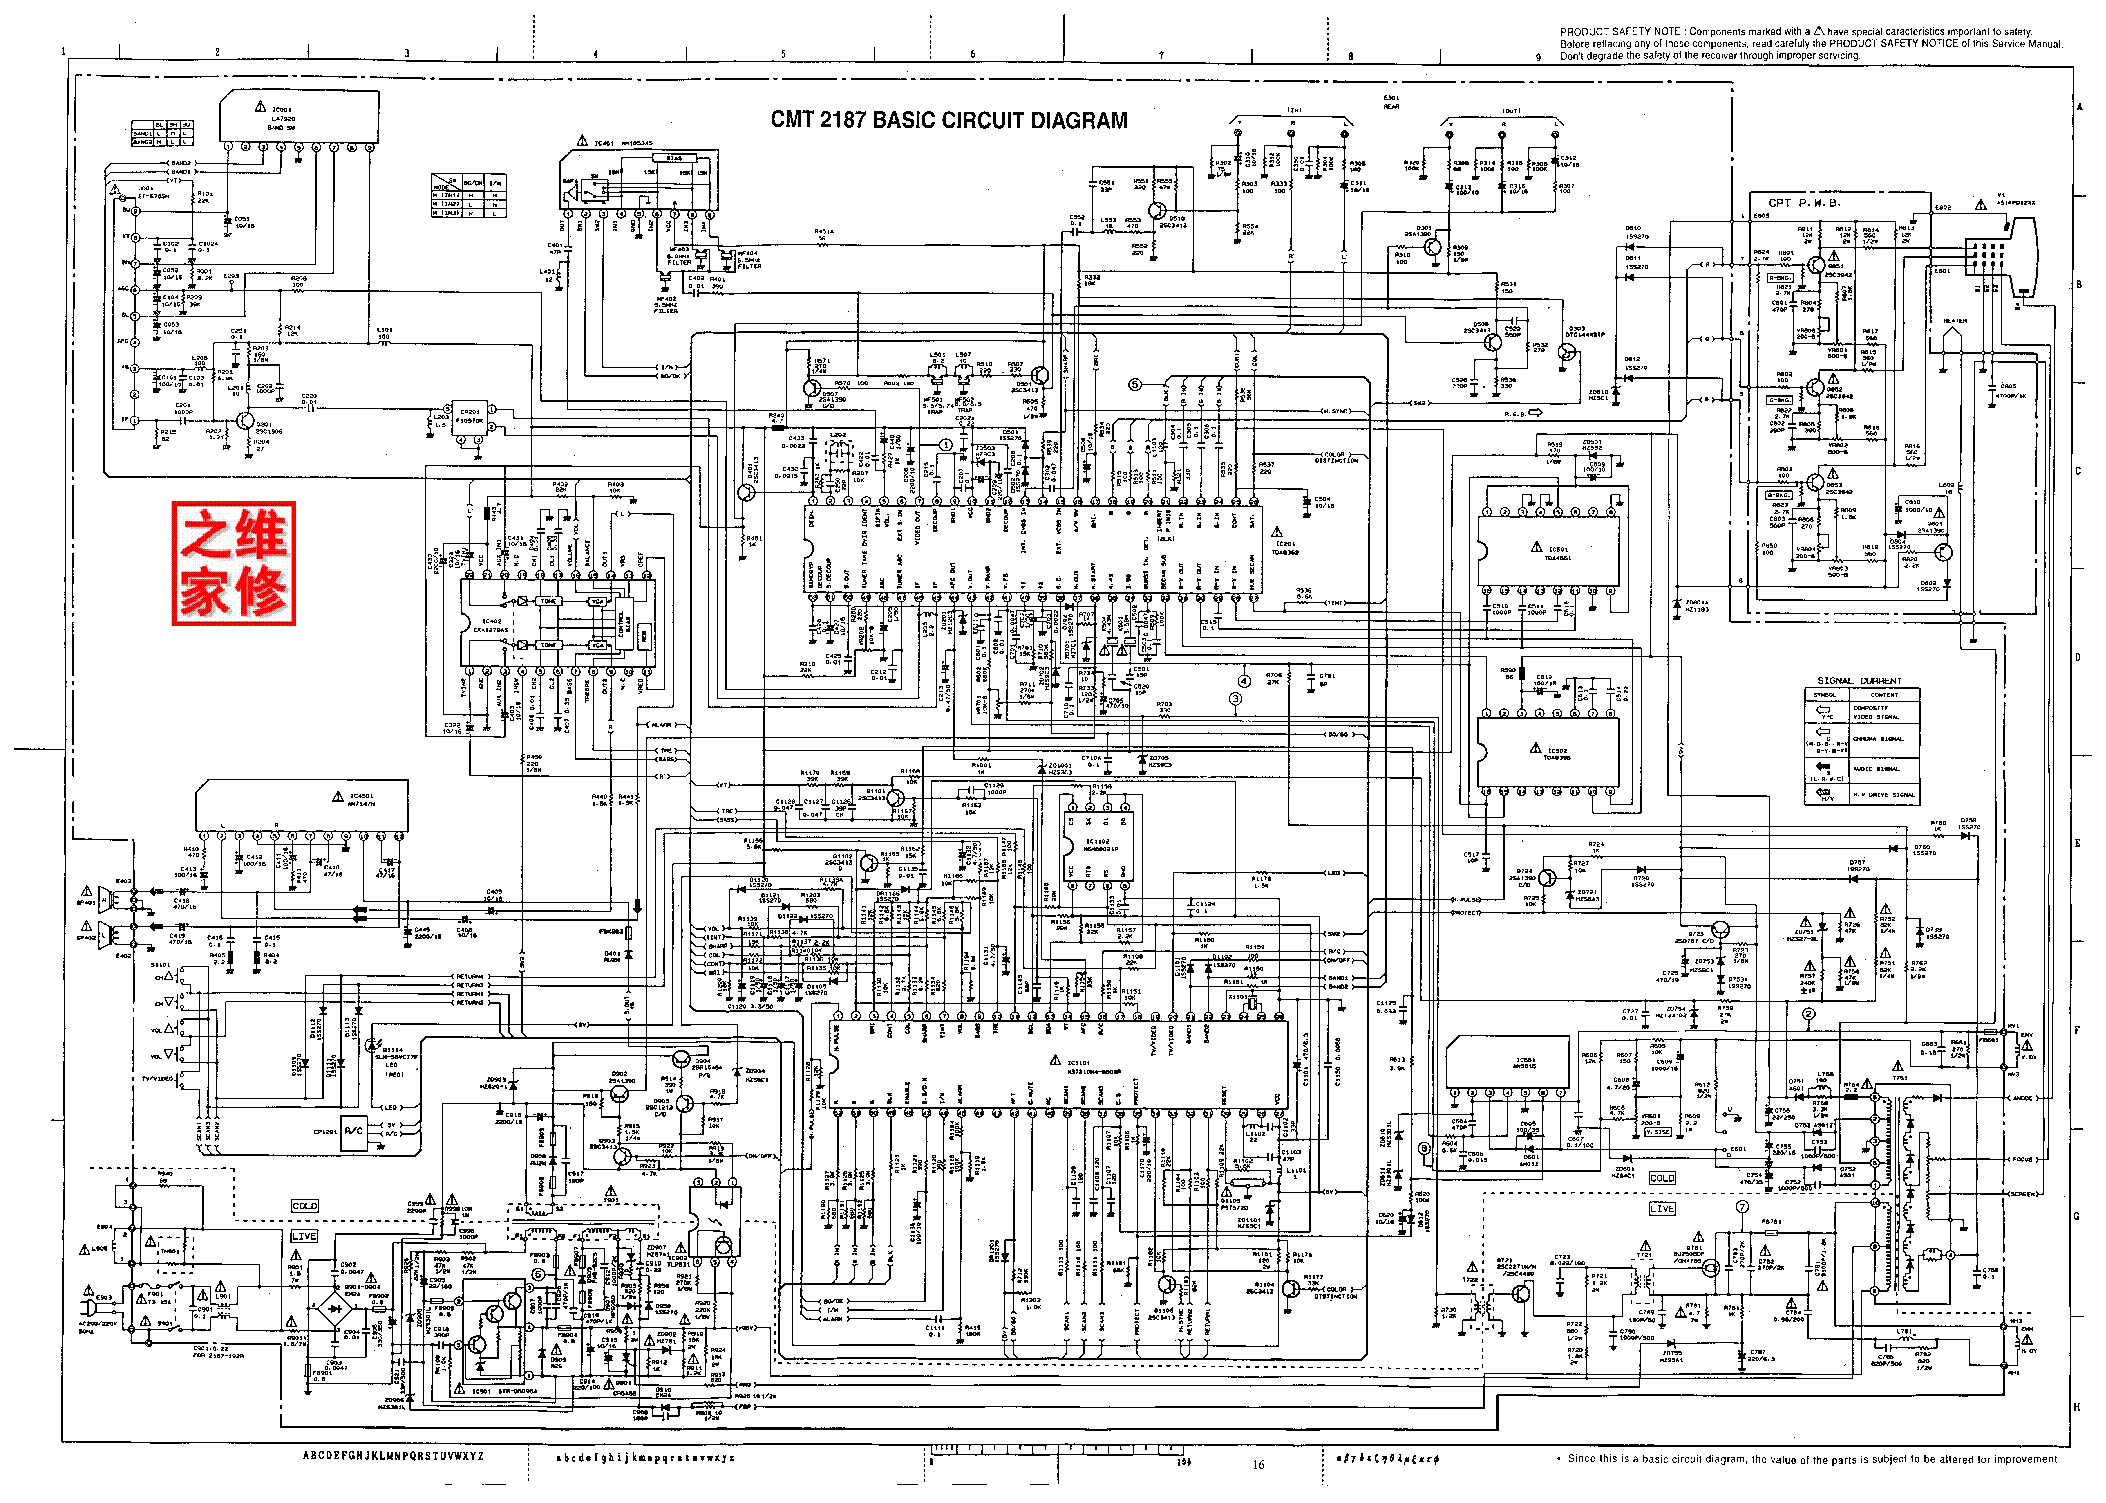 hitachi cmt   basic circuit diagram  service manual free    hitachi cmt   basic circuit diagram  service manual